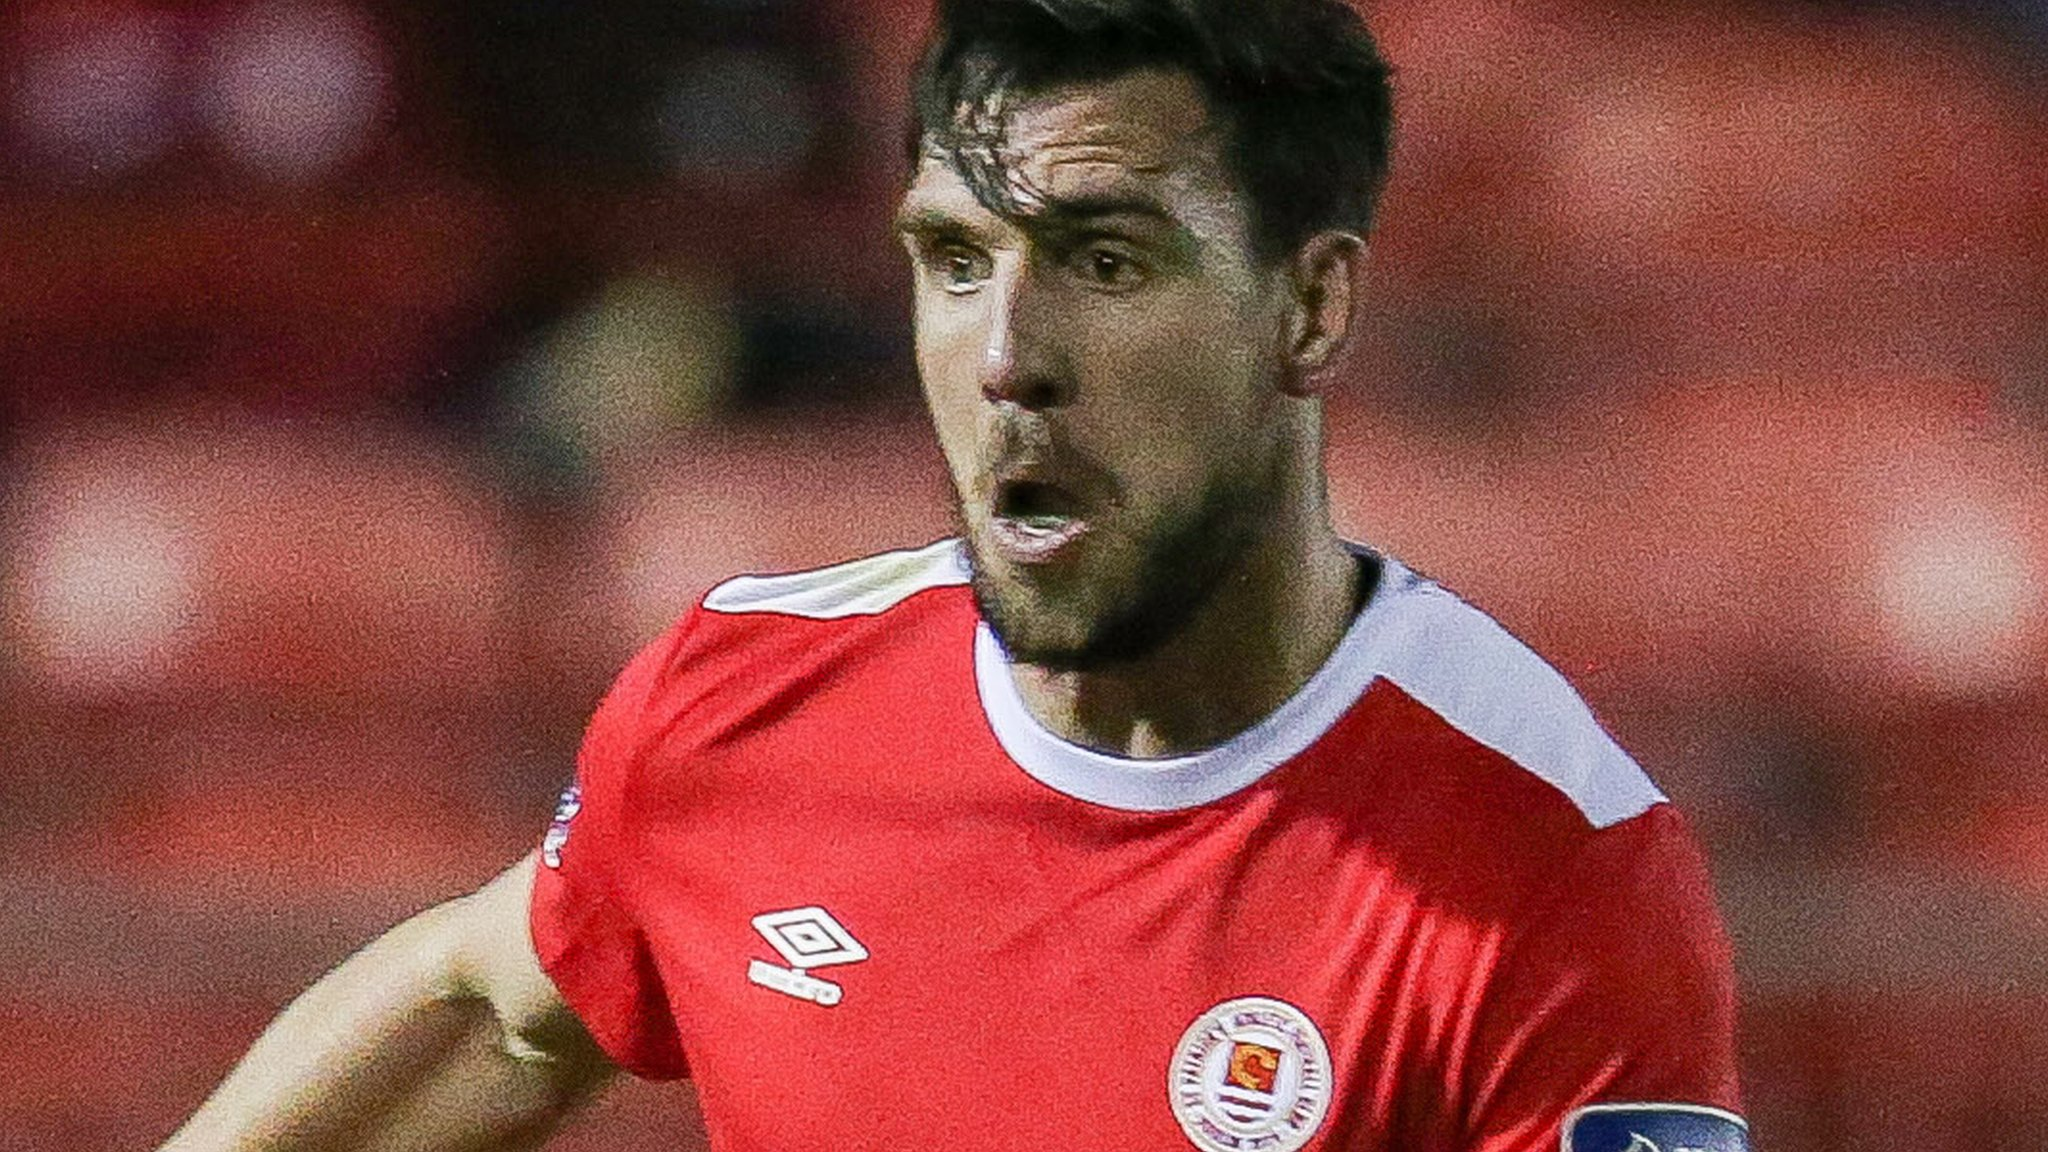 Gavin Peers: Glentoran sign former Sligo Rovers and Derry City defender